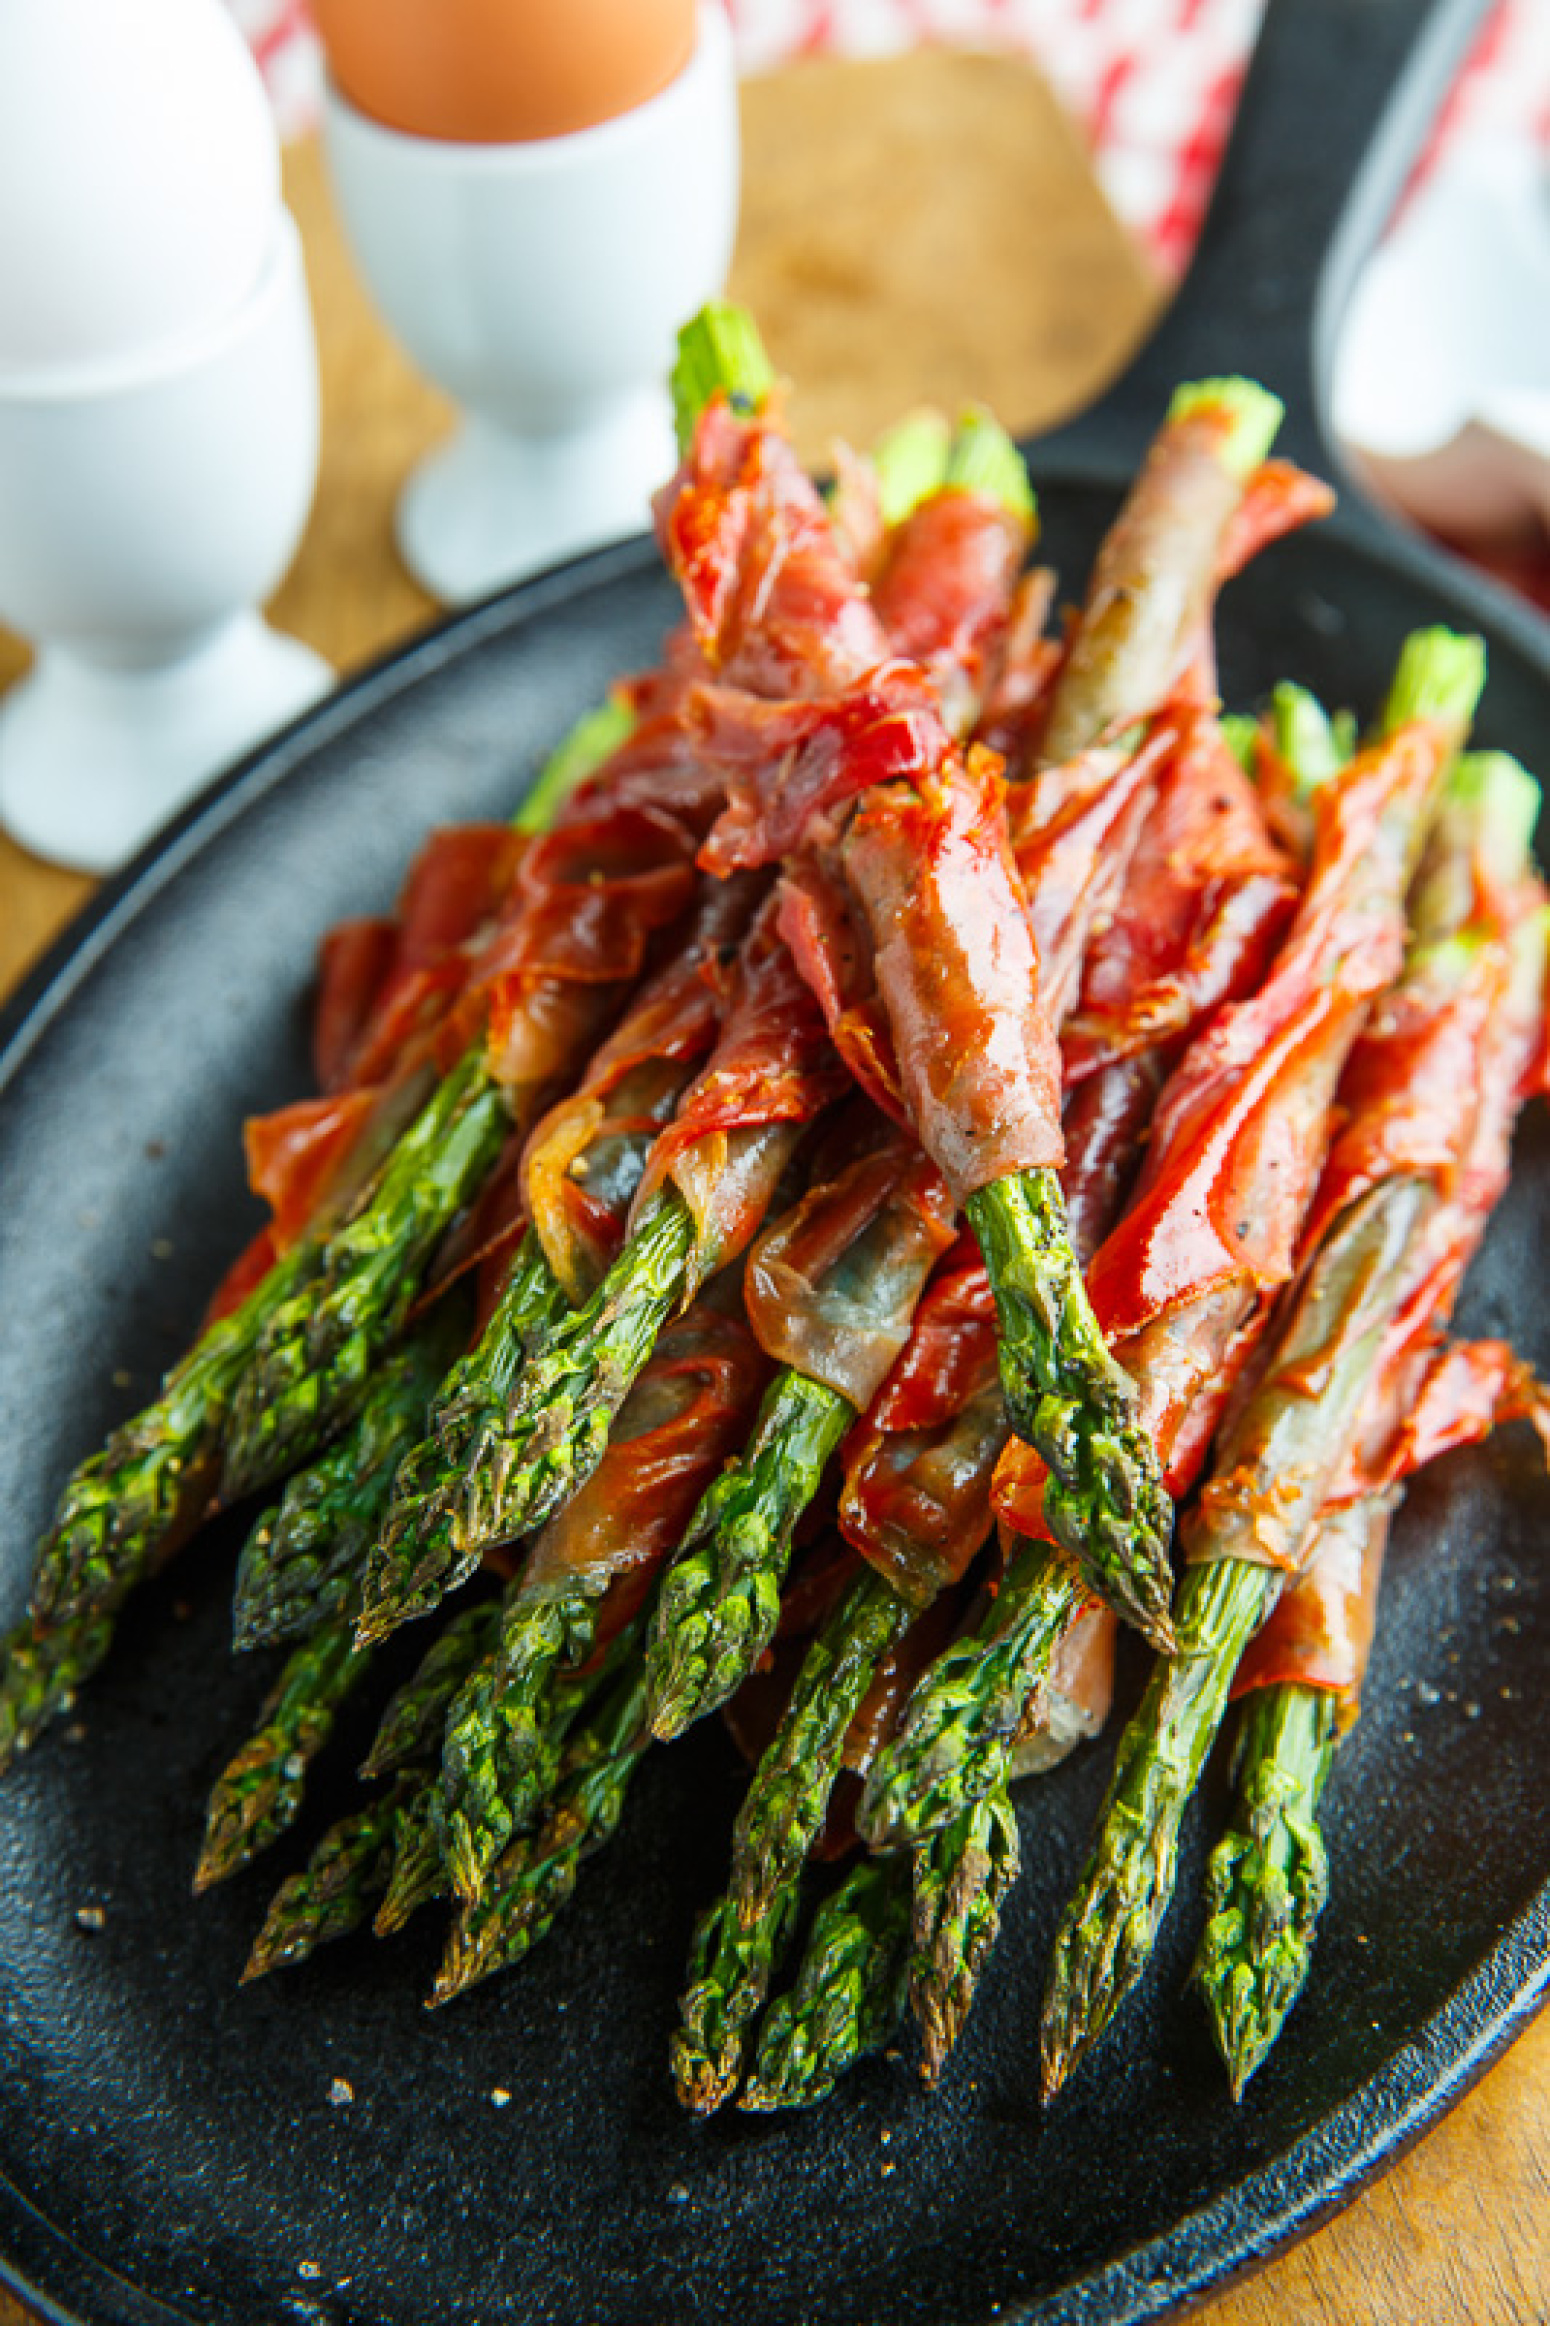 Crispy Prosciutto Wrapped Asparagus Fries Recipe | Just A Pinch ...